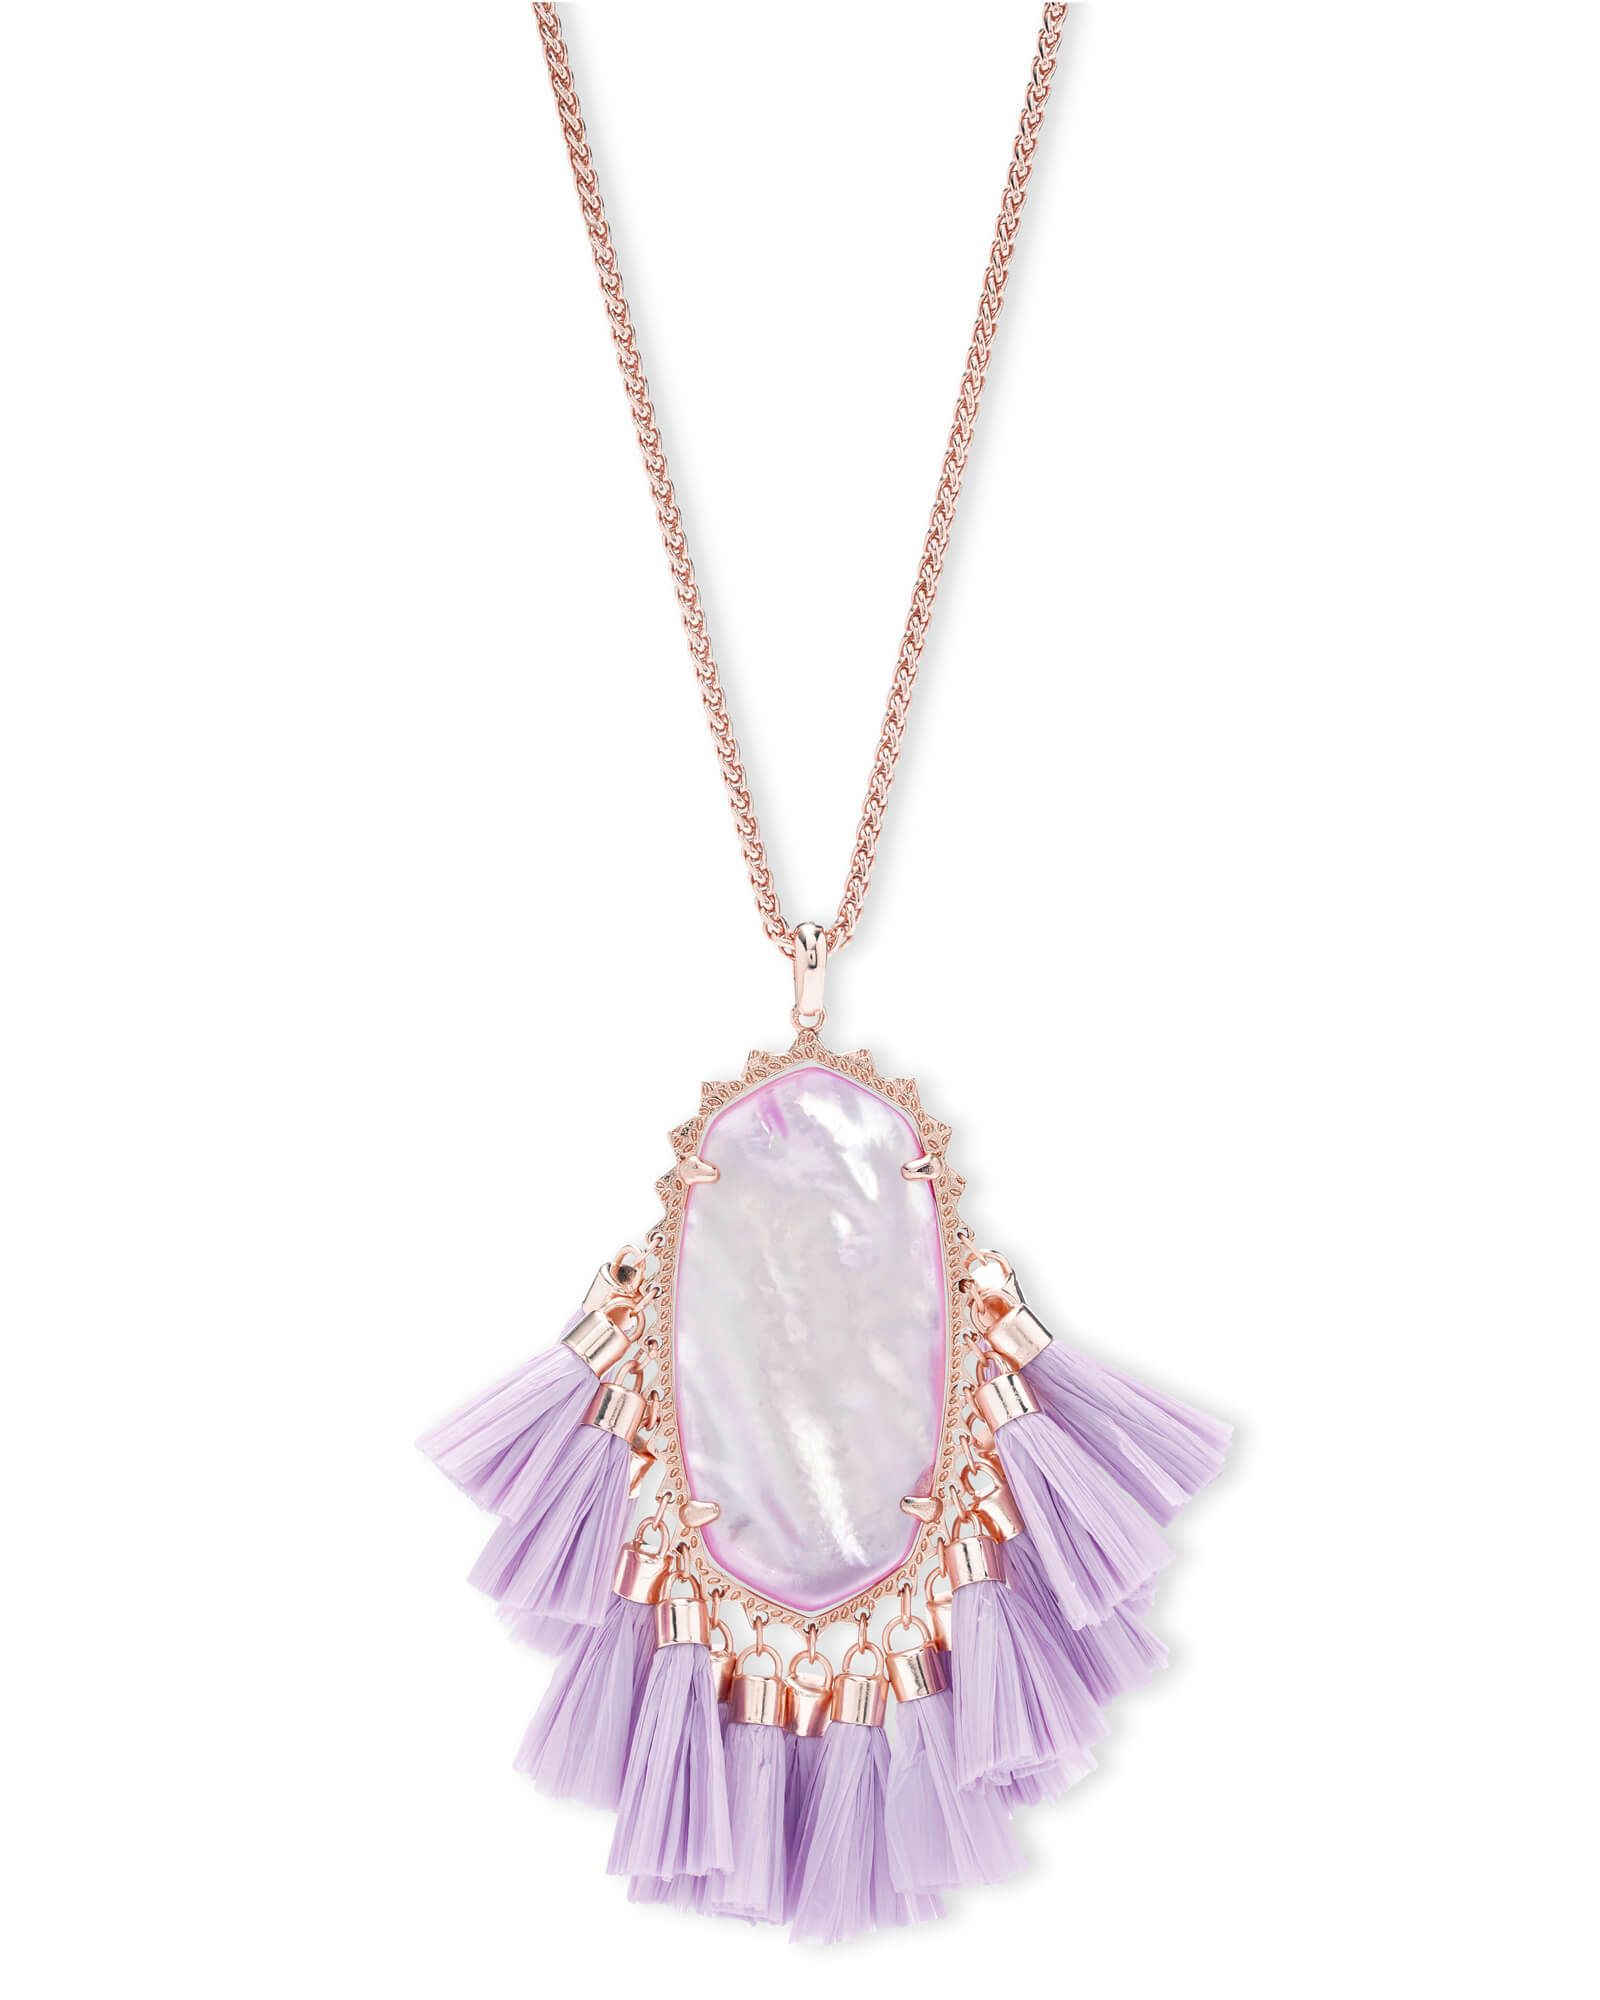 Betsy rose gold long pendant necklace in lilac mother of pearl